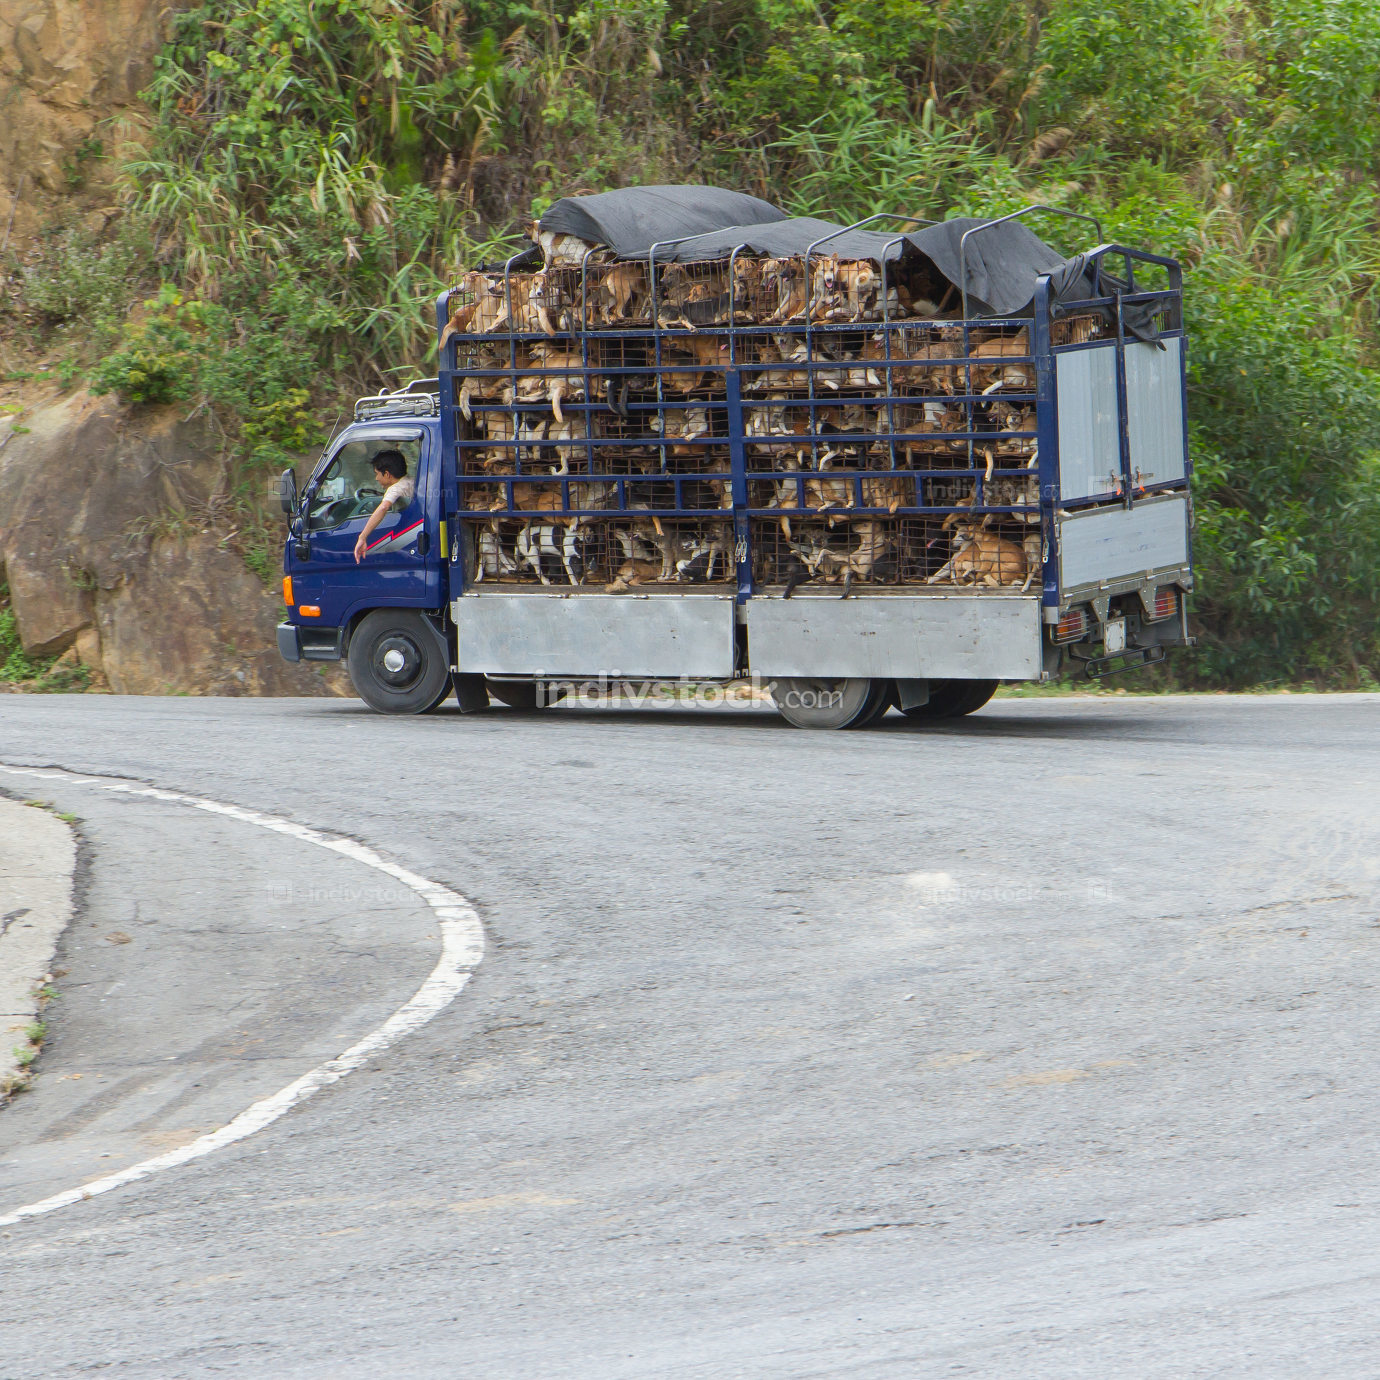 Trailer filled with live dogs destined for Vietnamese slaughterhouses